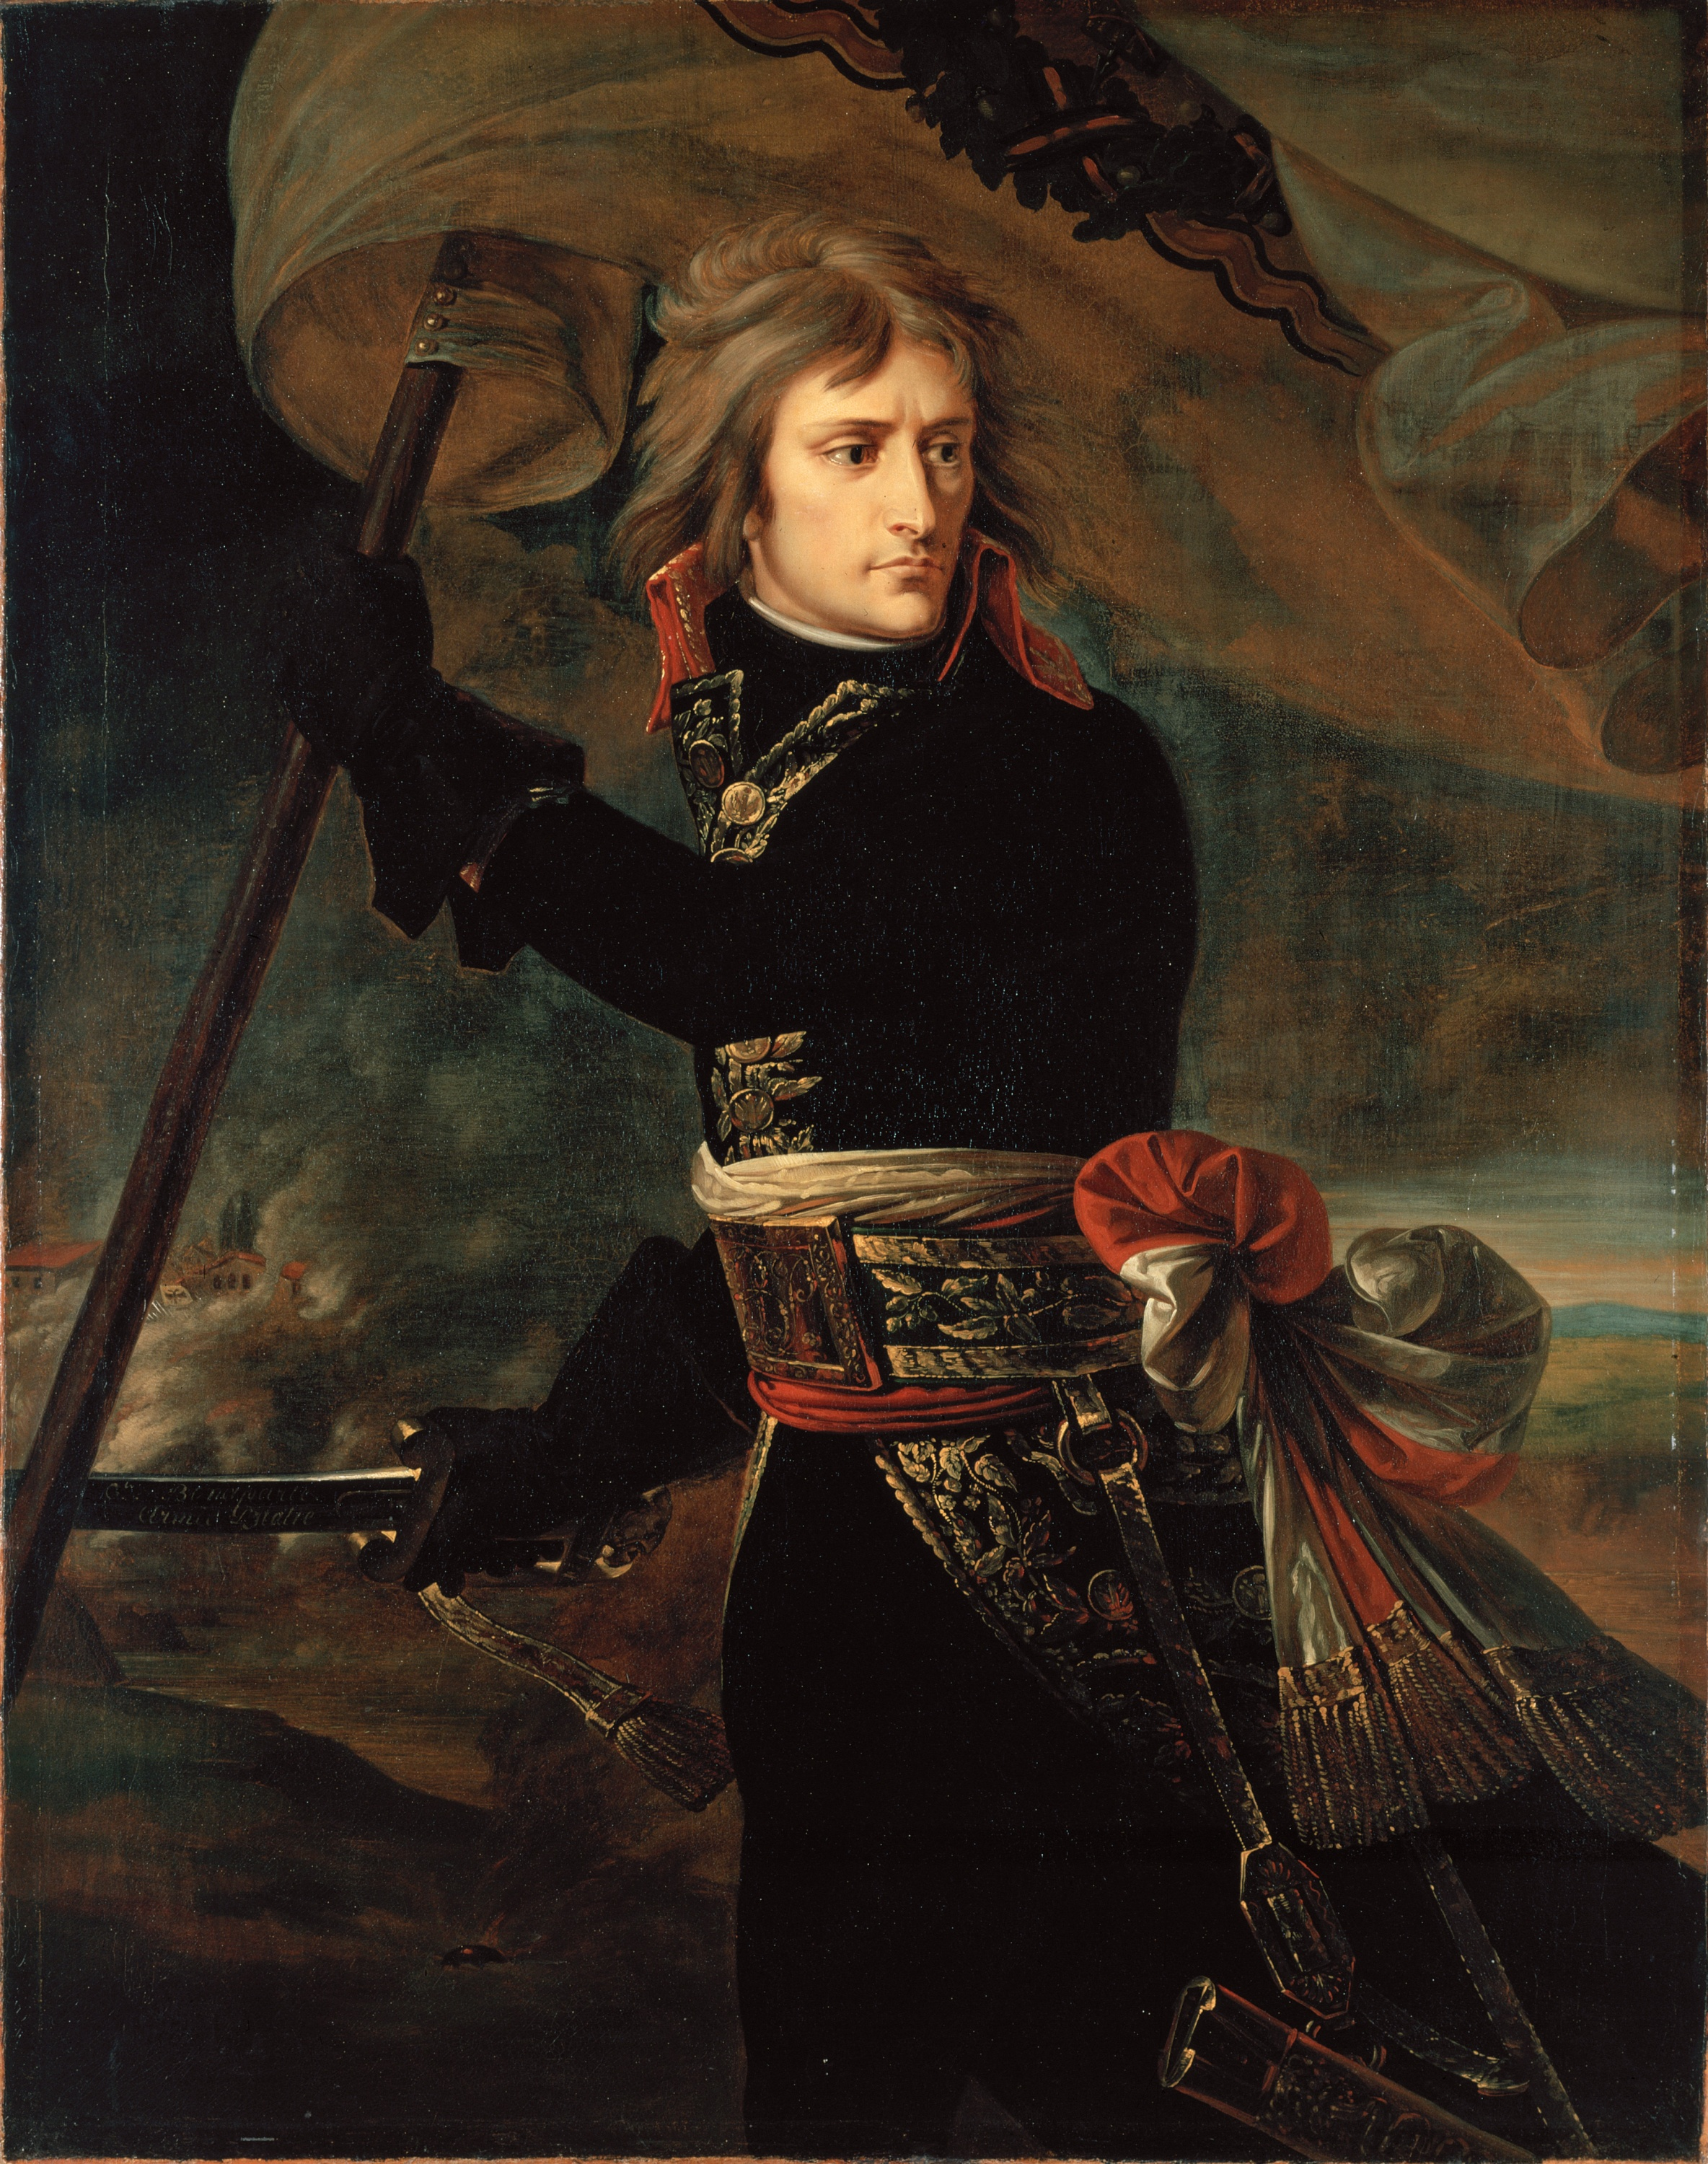 Gros,_Antoine-Jean,_baron_-_Napoleon_Bonaparte_on_the_Bridge_at_Arcole.jpg